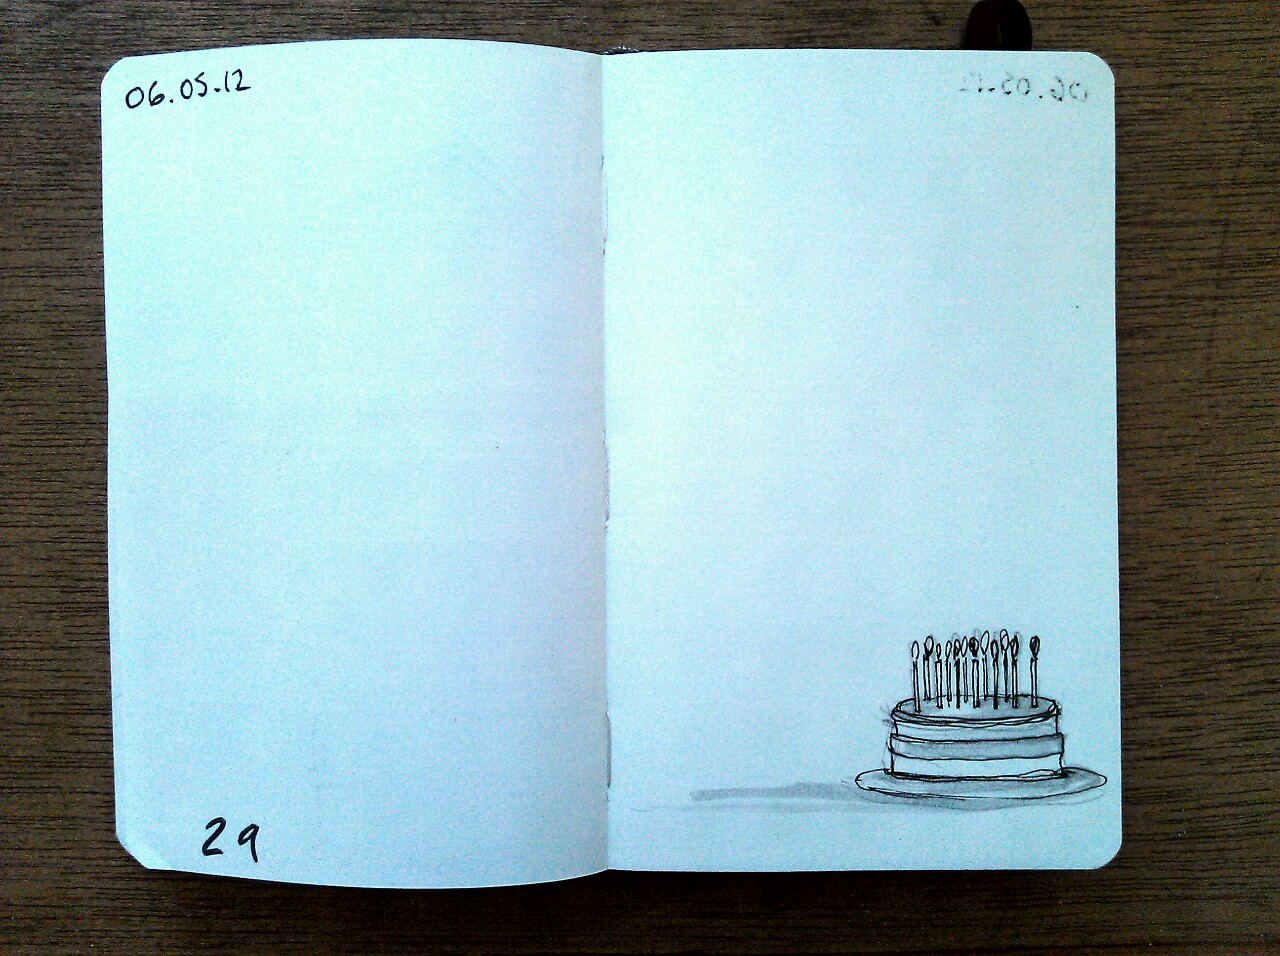 365 drawings later … day 96 … 29